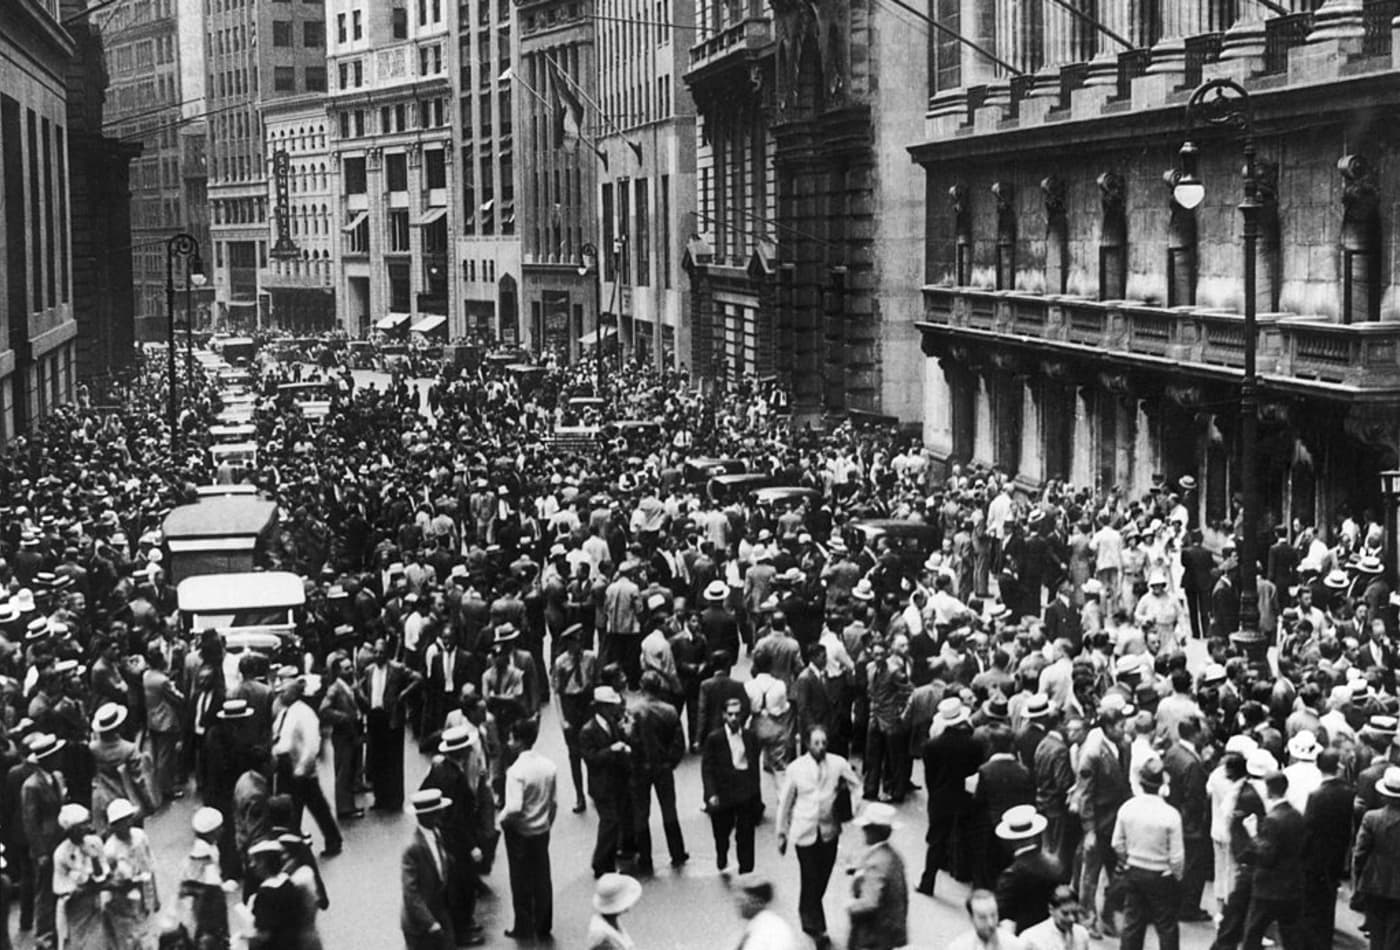 'Roaring 20s' after the pandemic? Big banks warn be careful what you wish for